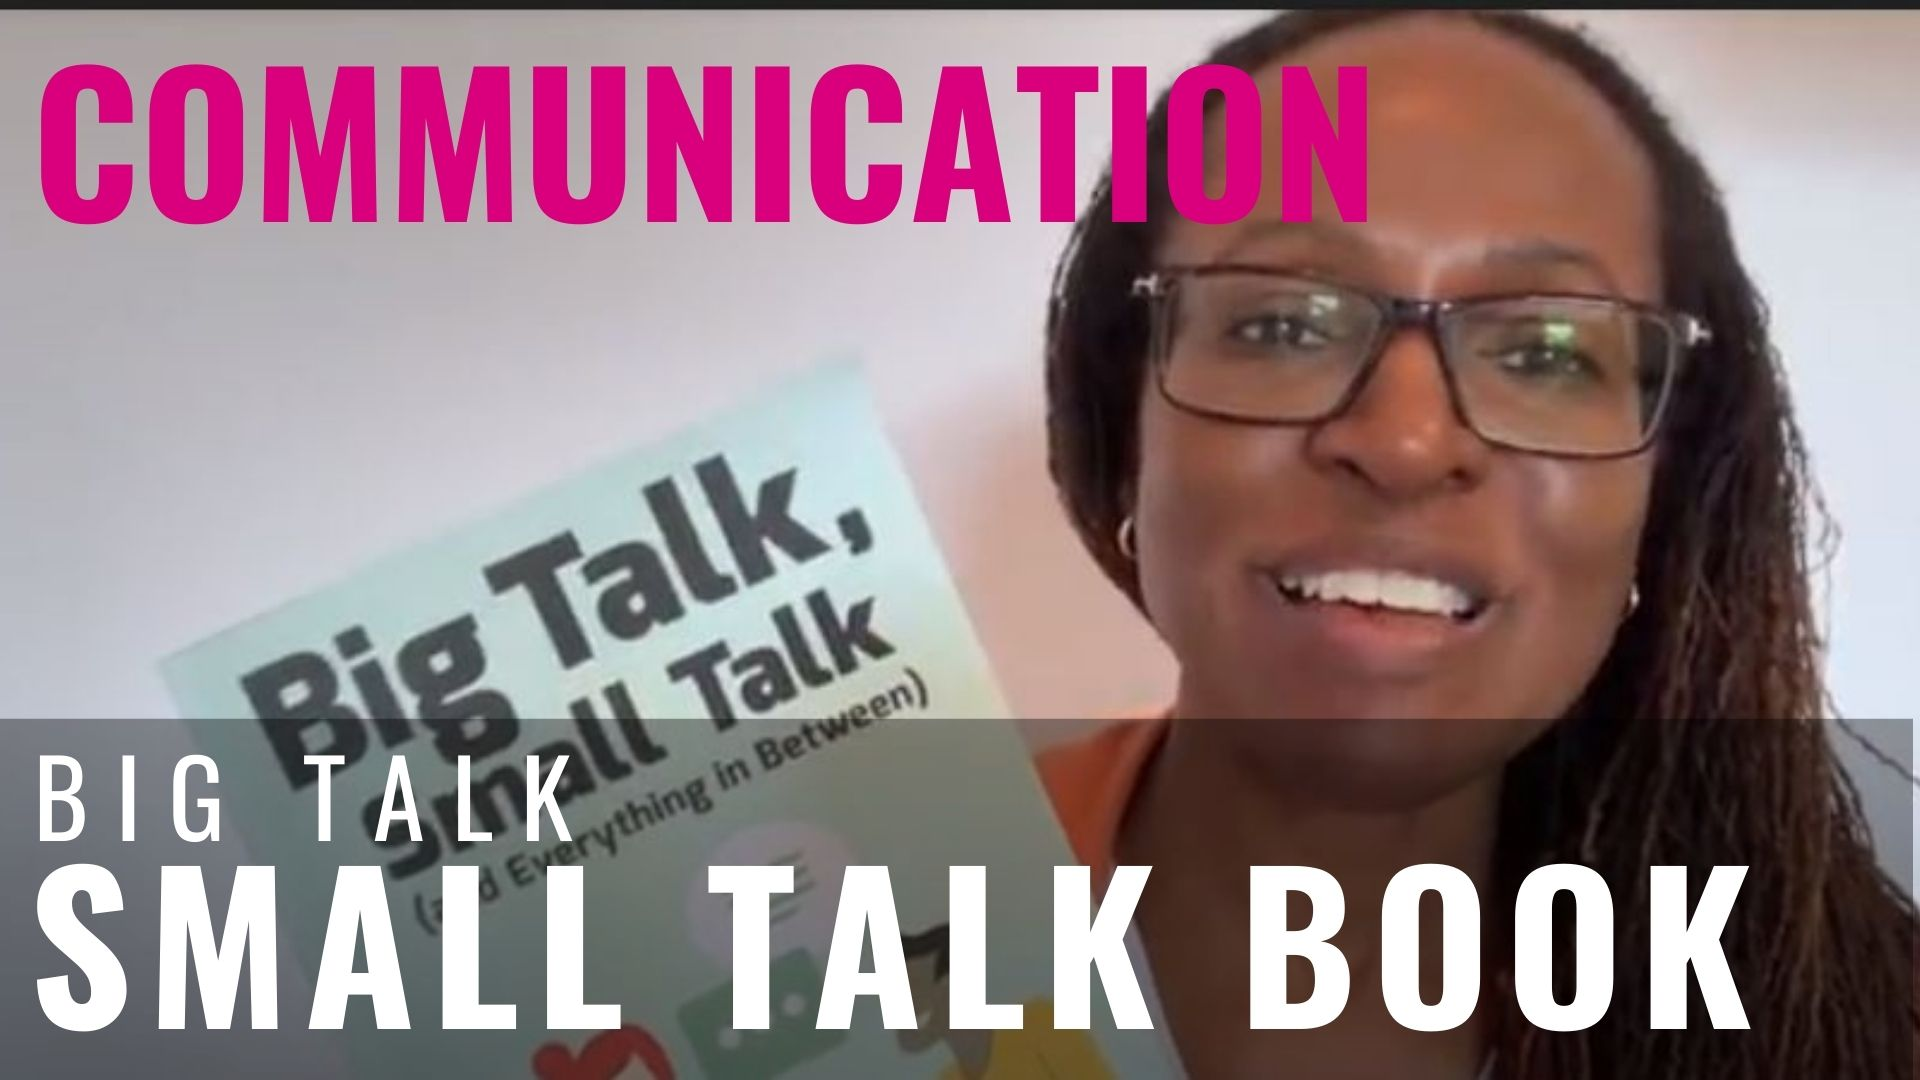 COMMUNICATION - Big Talk Small Talk Book